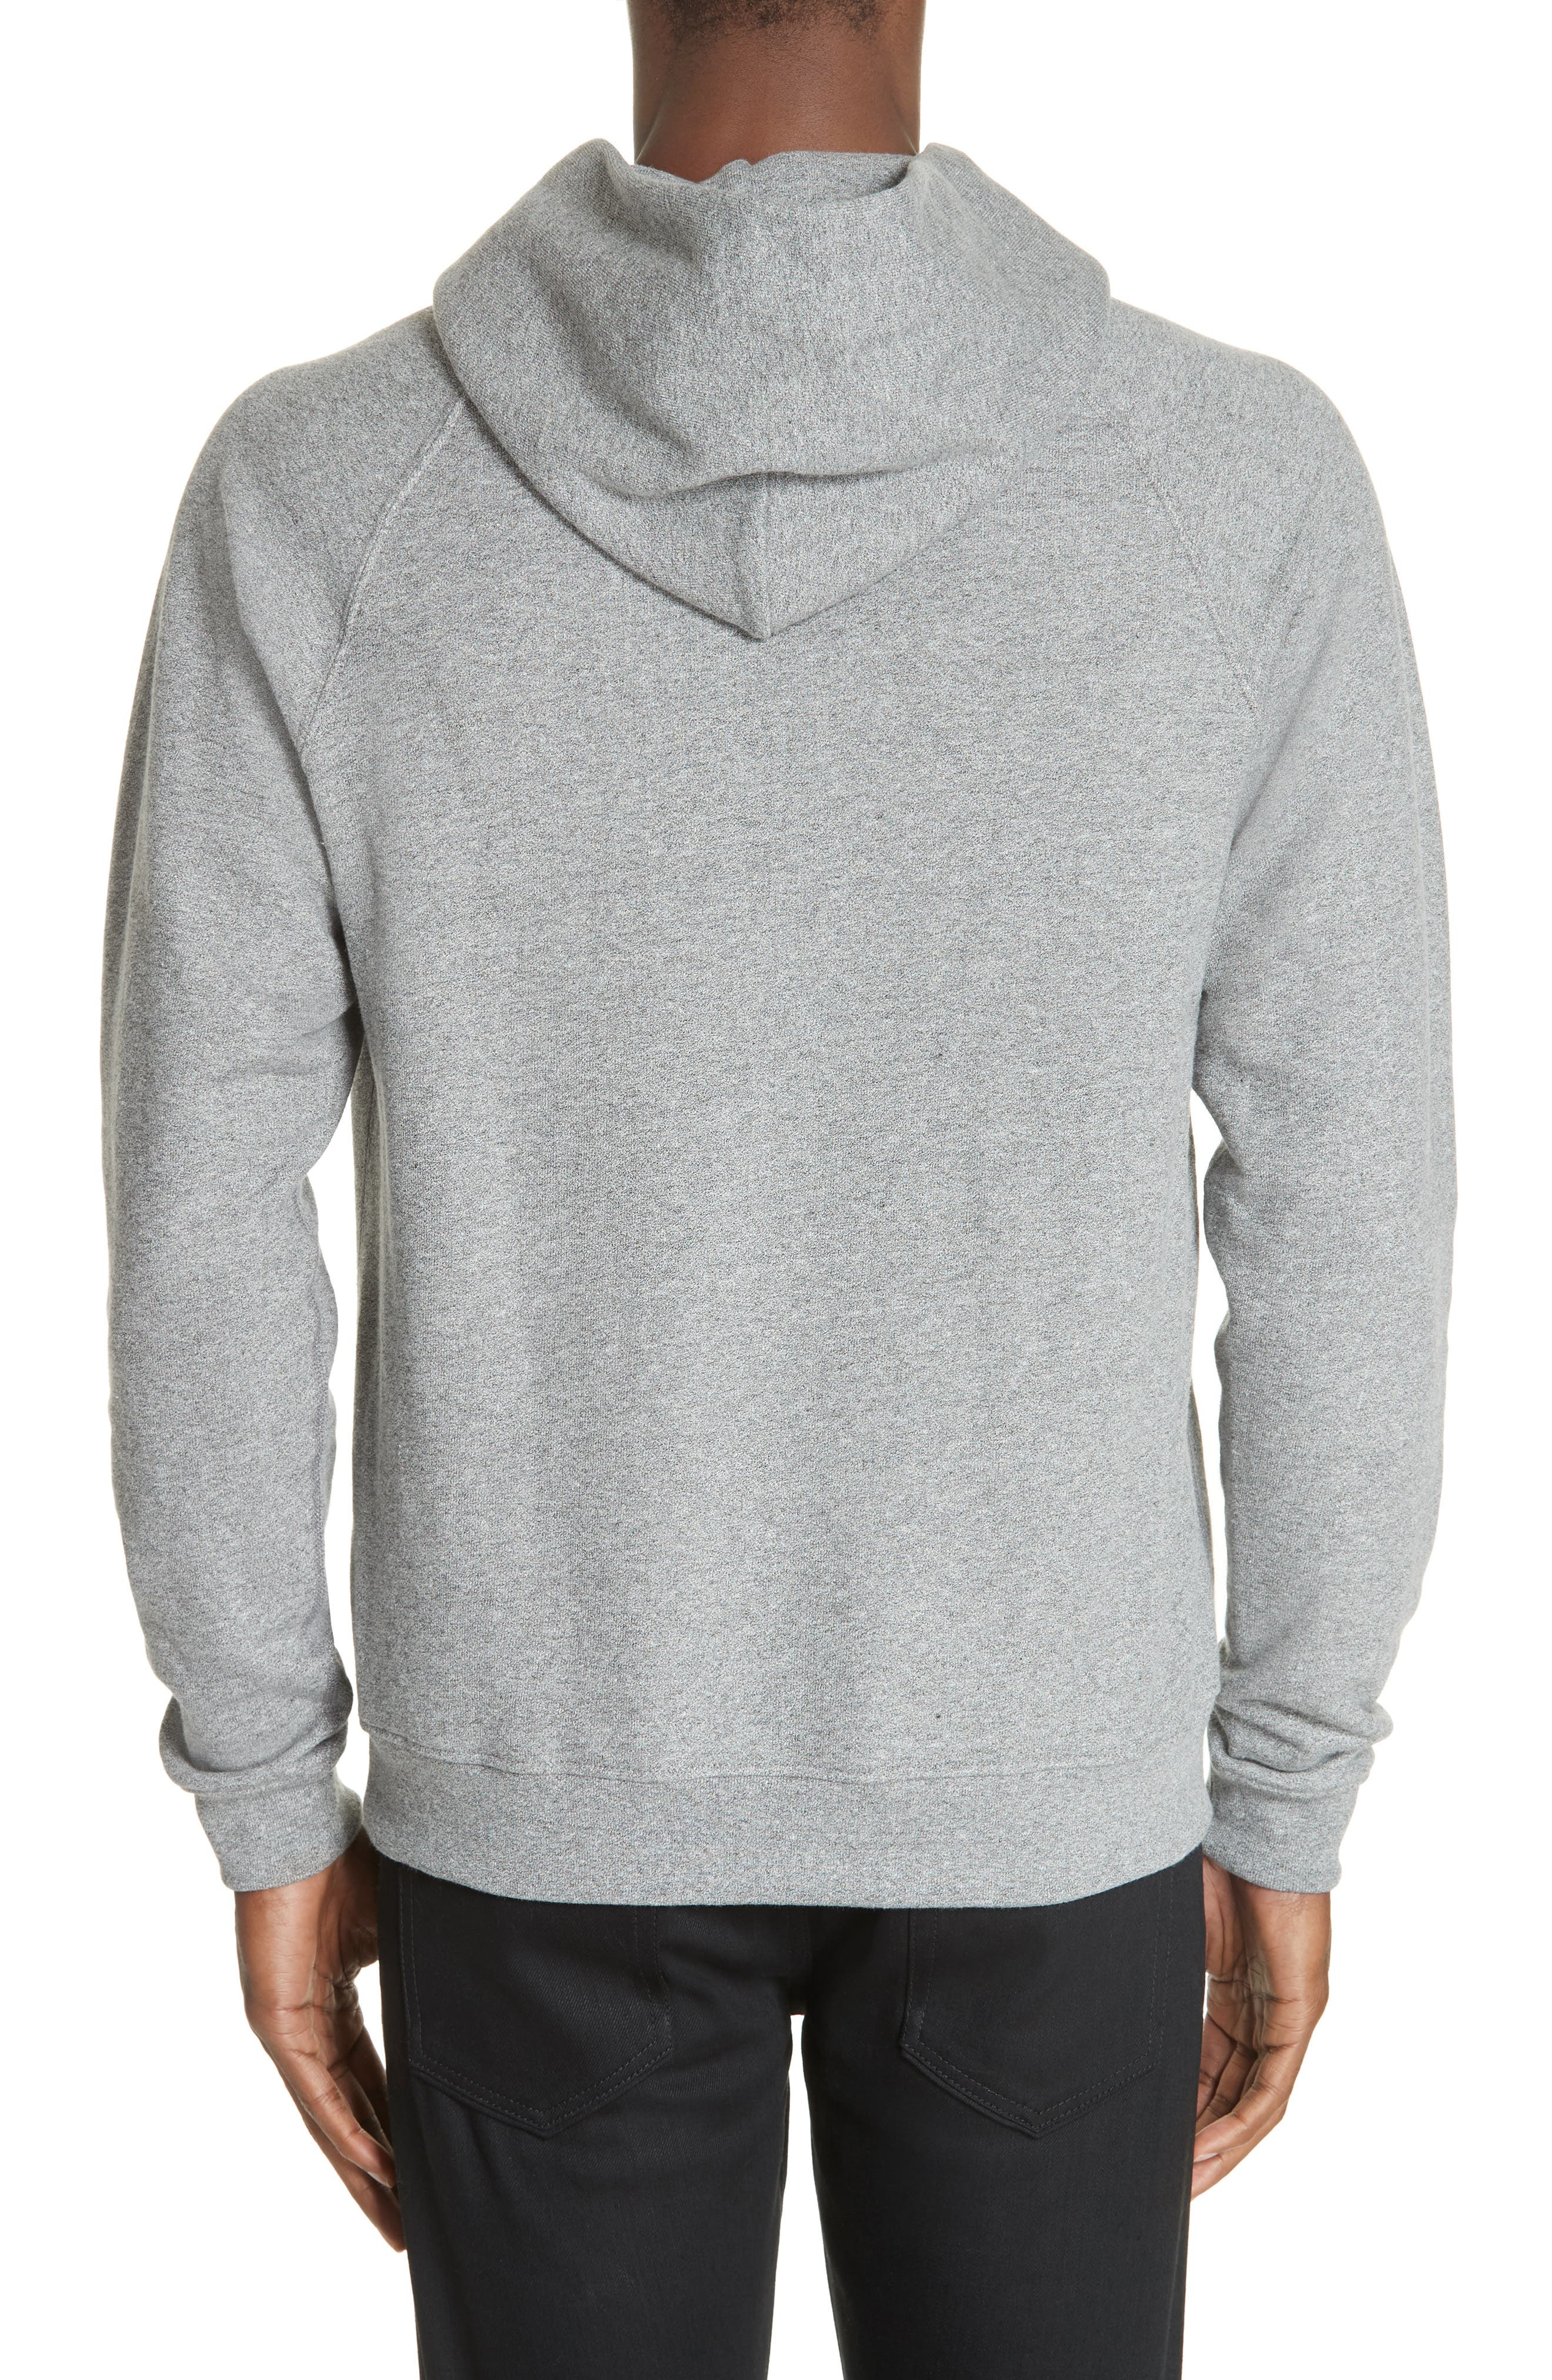 Raglan Hooded Sweatshirt,                             Alternate thumbnail 2, color,                             DARK GREY